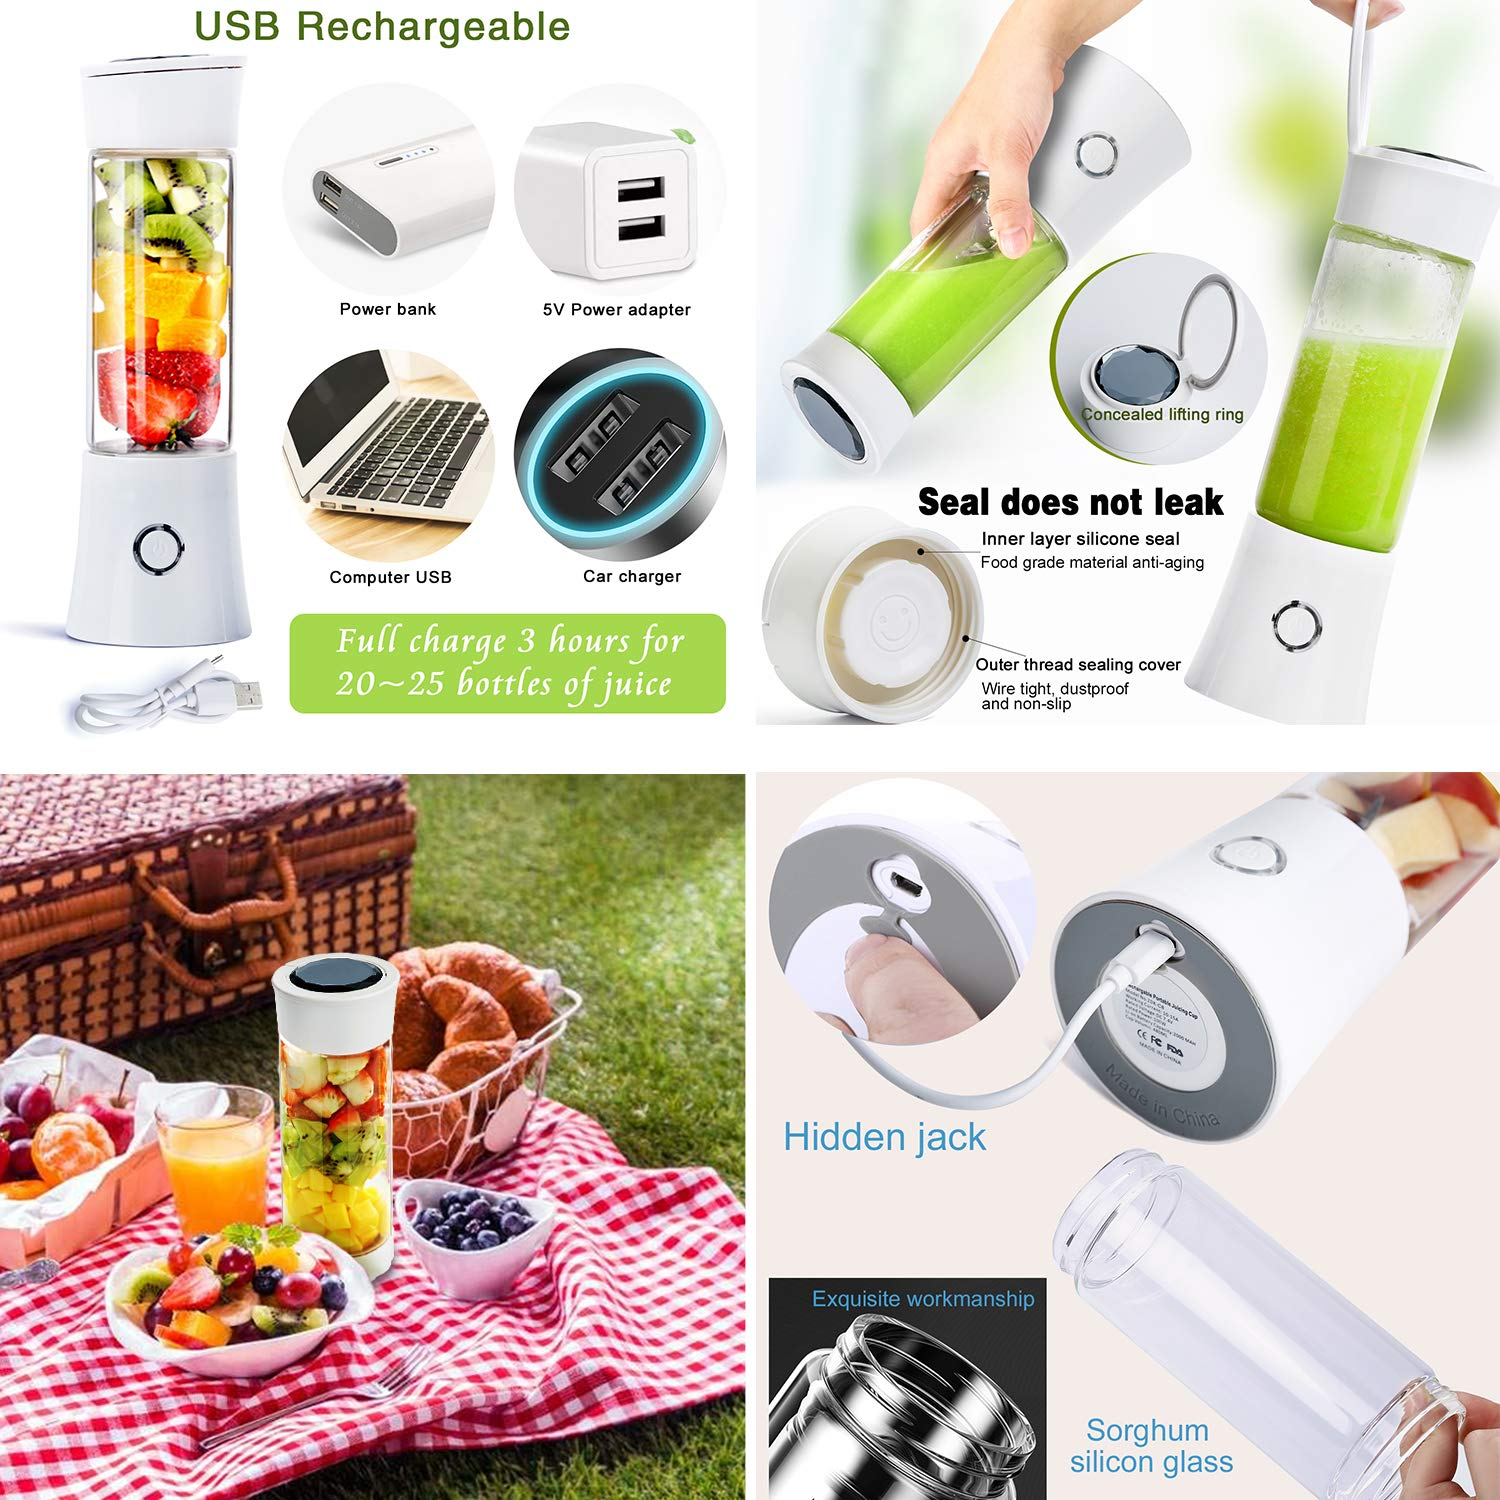 Portable Blender Fityou 6-Blade Personal Glass Smoothie Fruit Mixer Juicer Cup,USB Rechargeable Multifunctional Travel Blender for Shakes and Smoothies,with 4000mAh Rechargeable Battery,FDA BPA Free